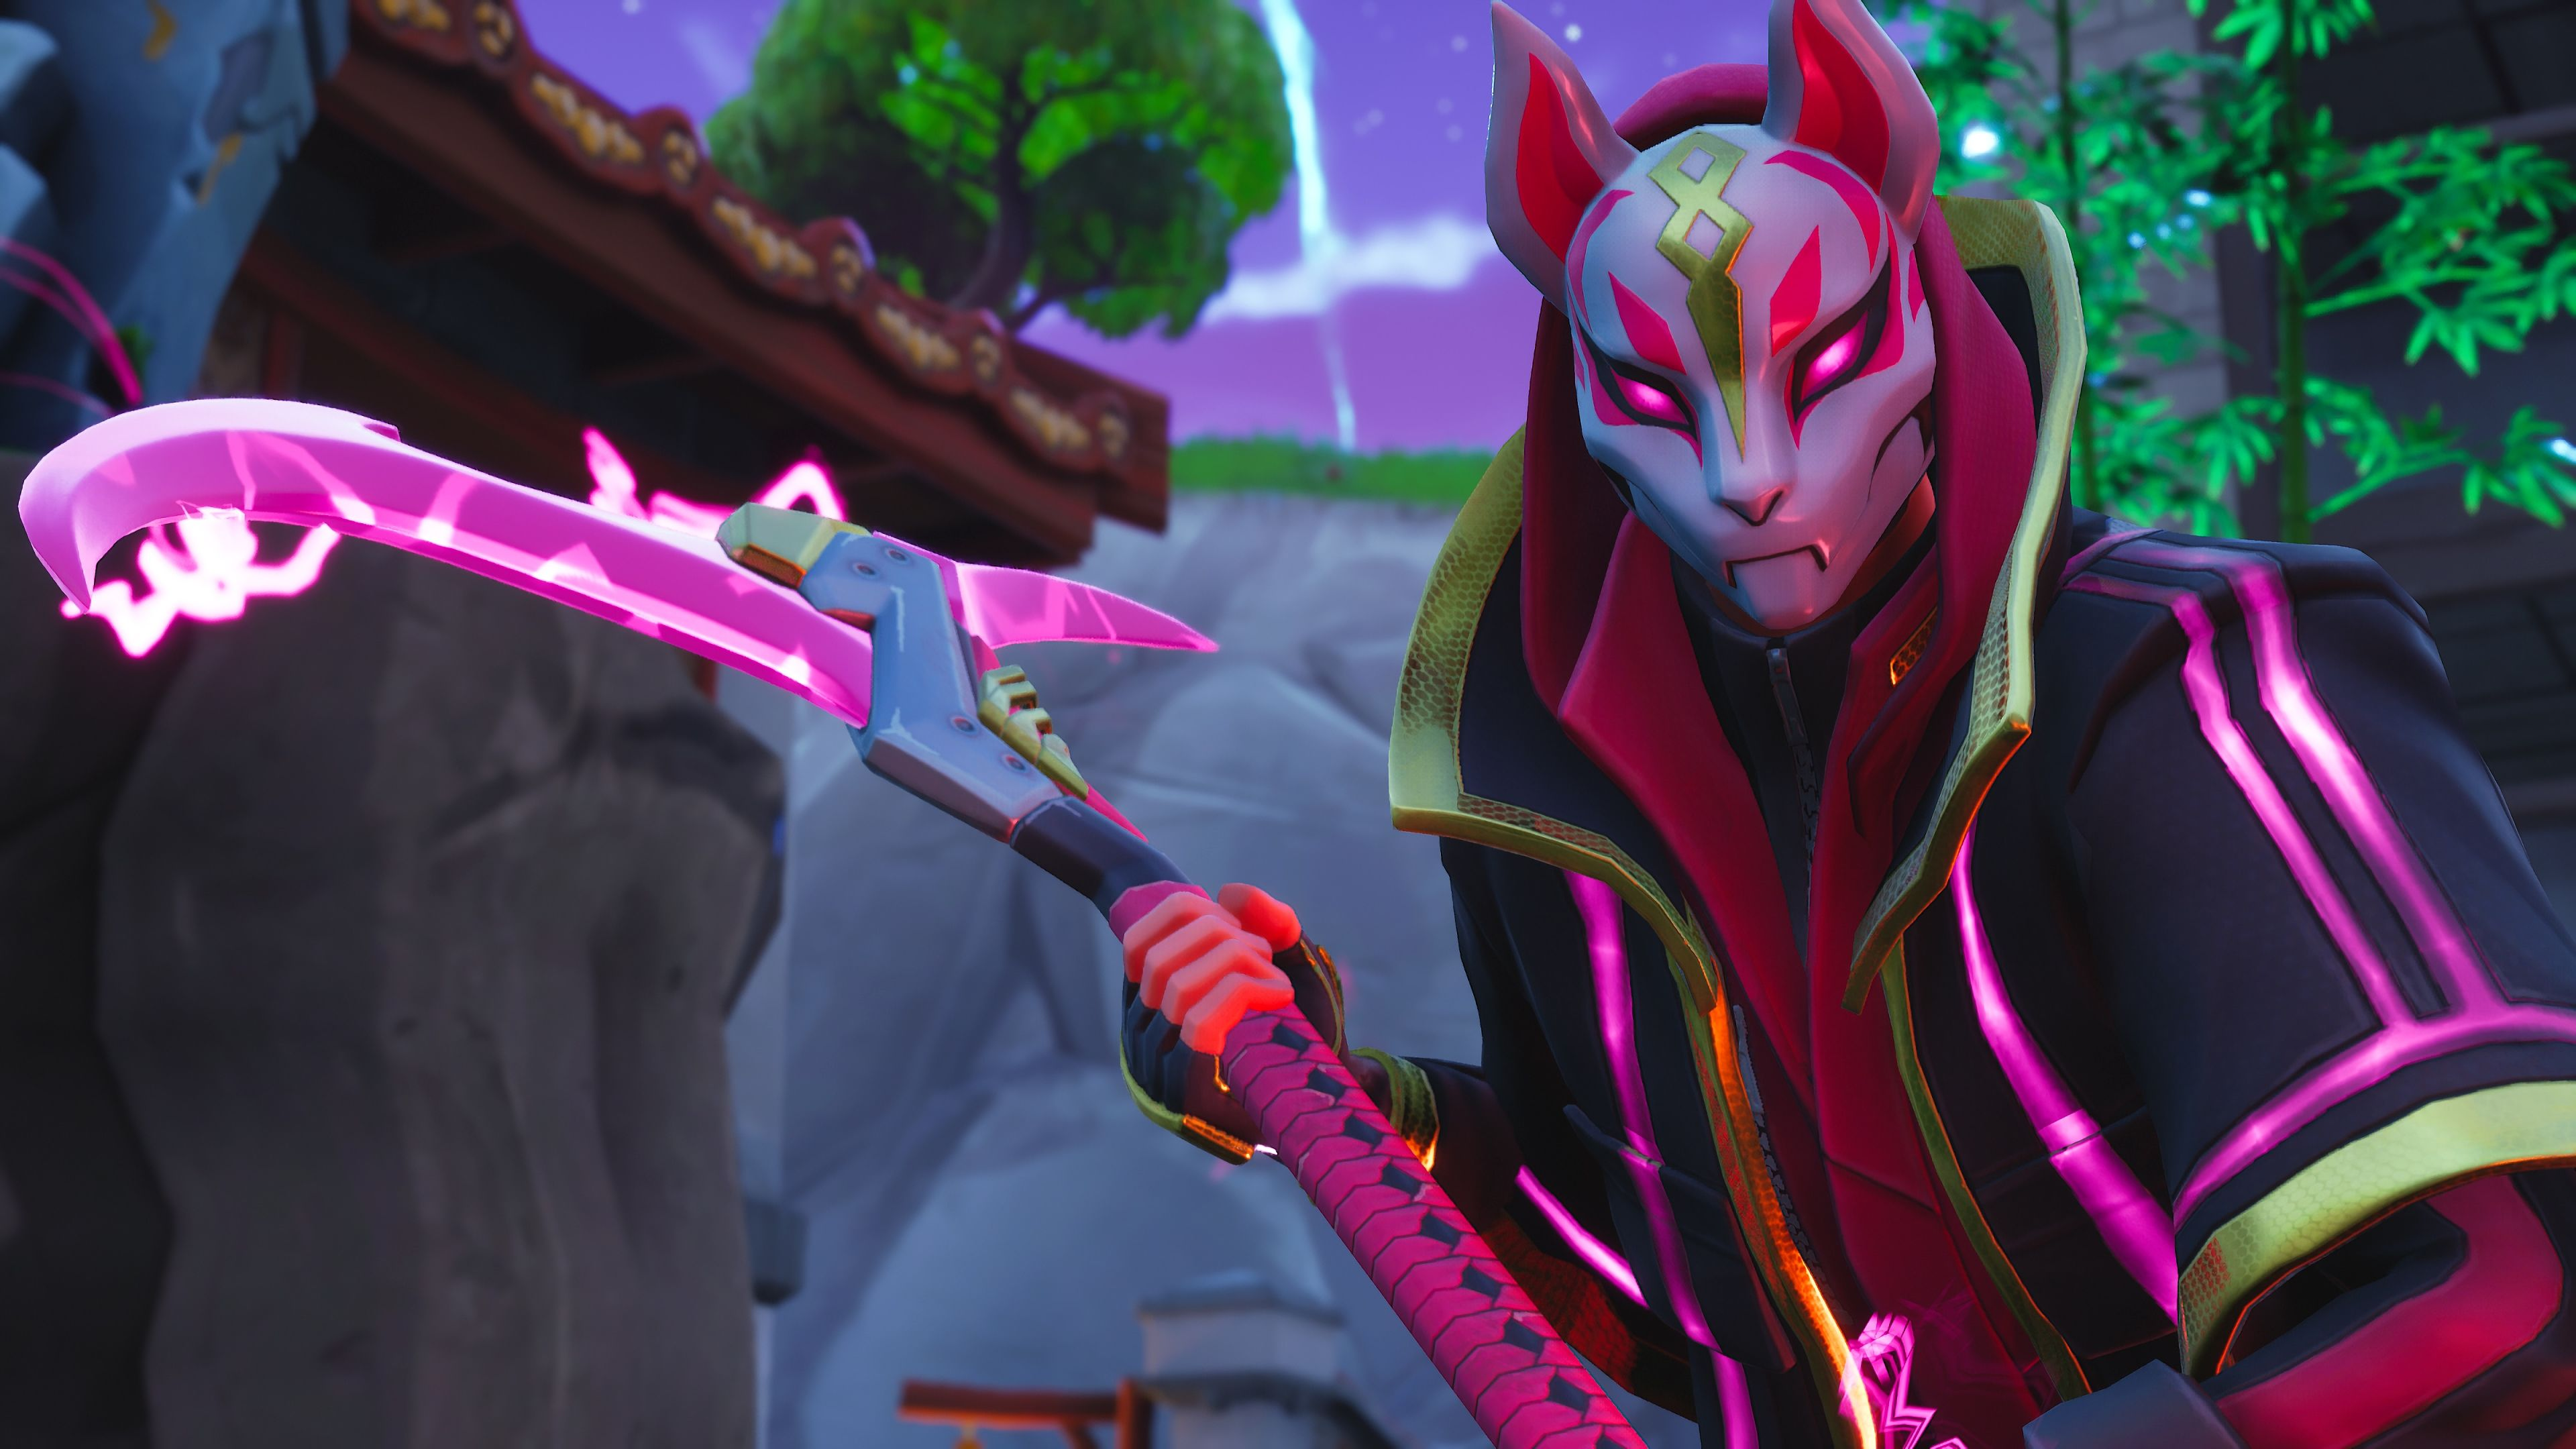 Drift Fortnite Battle Royale Video Game 3840x2160 Wallpaper Fortnite Best Gaming Wallpapers Drifting